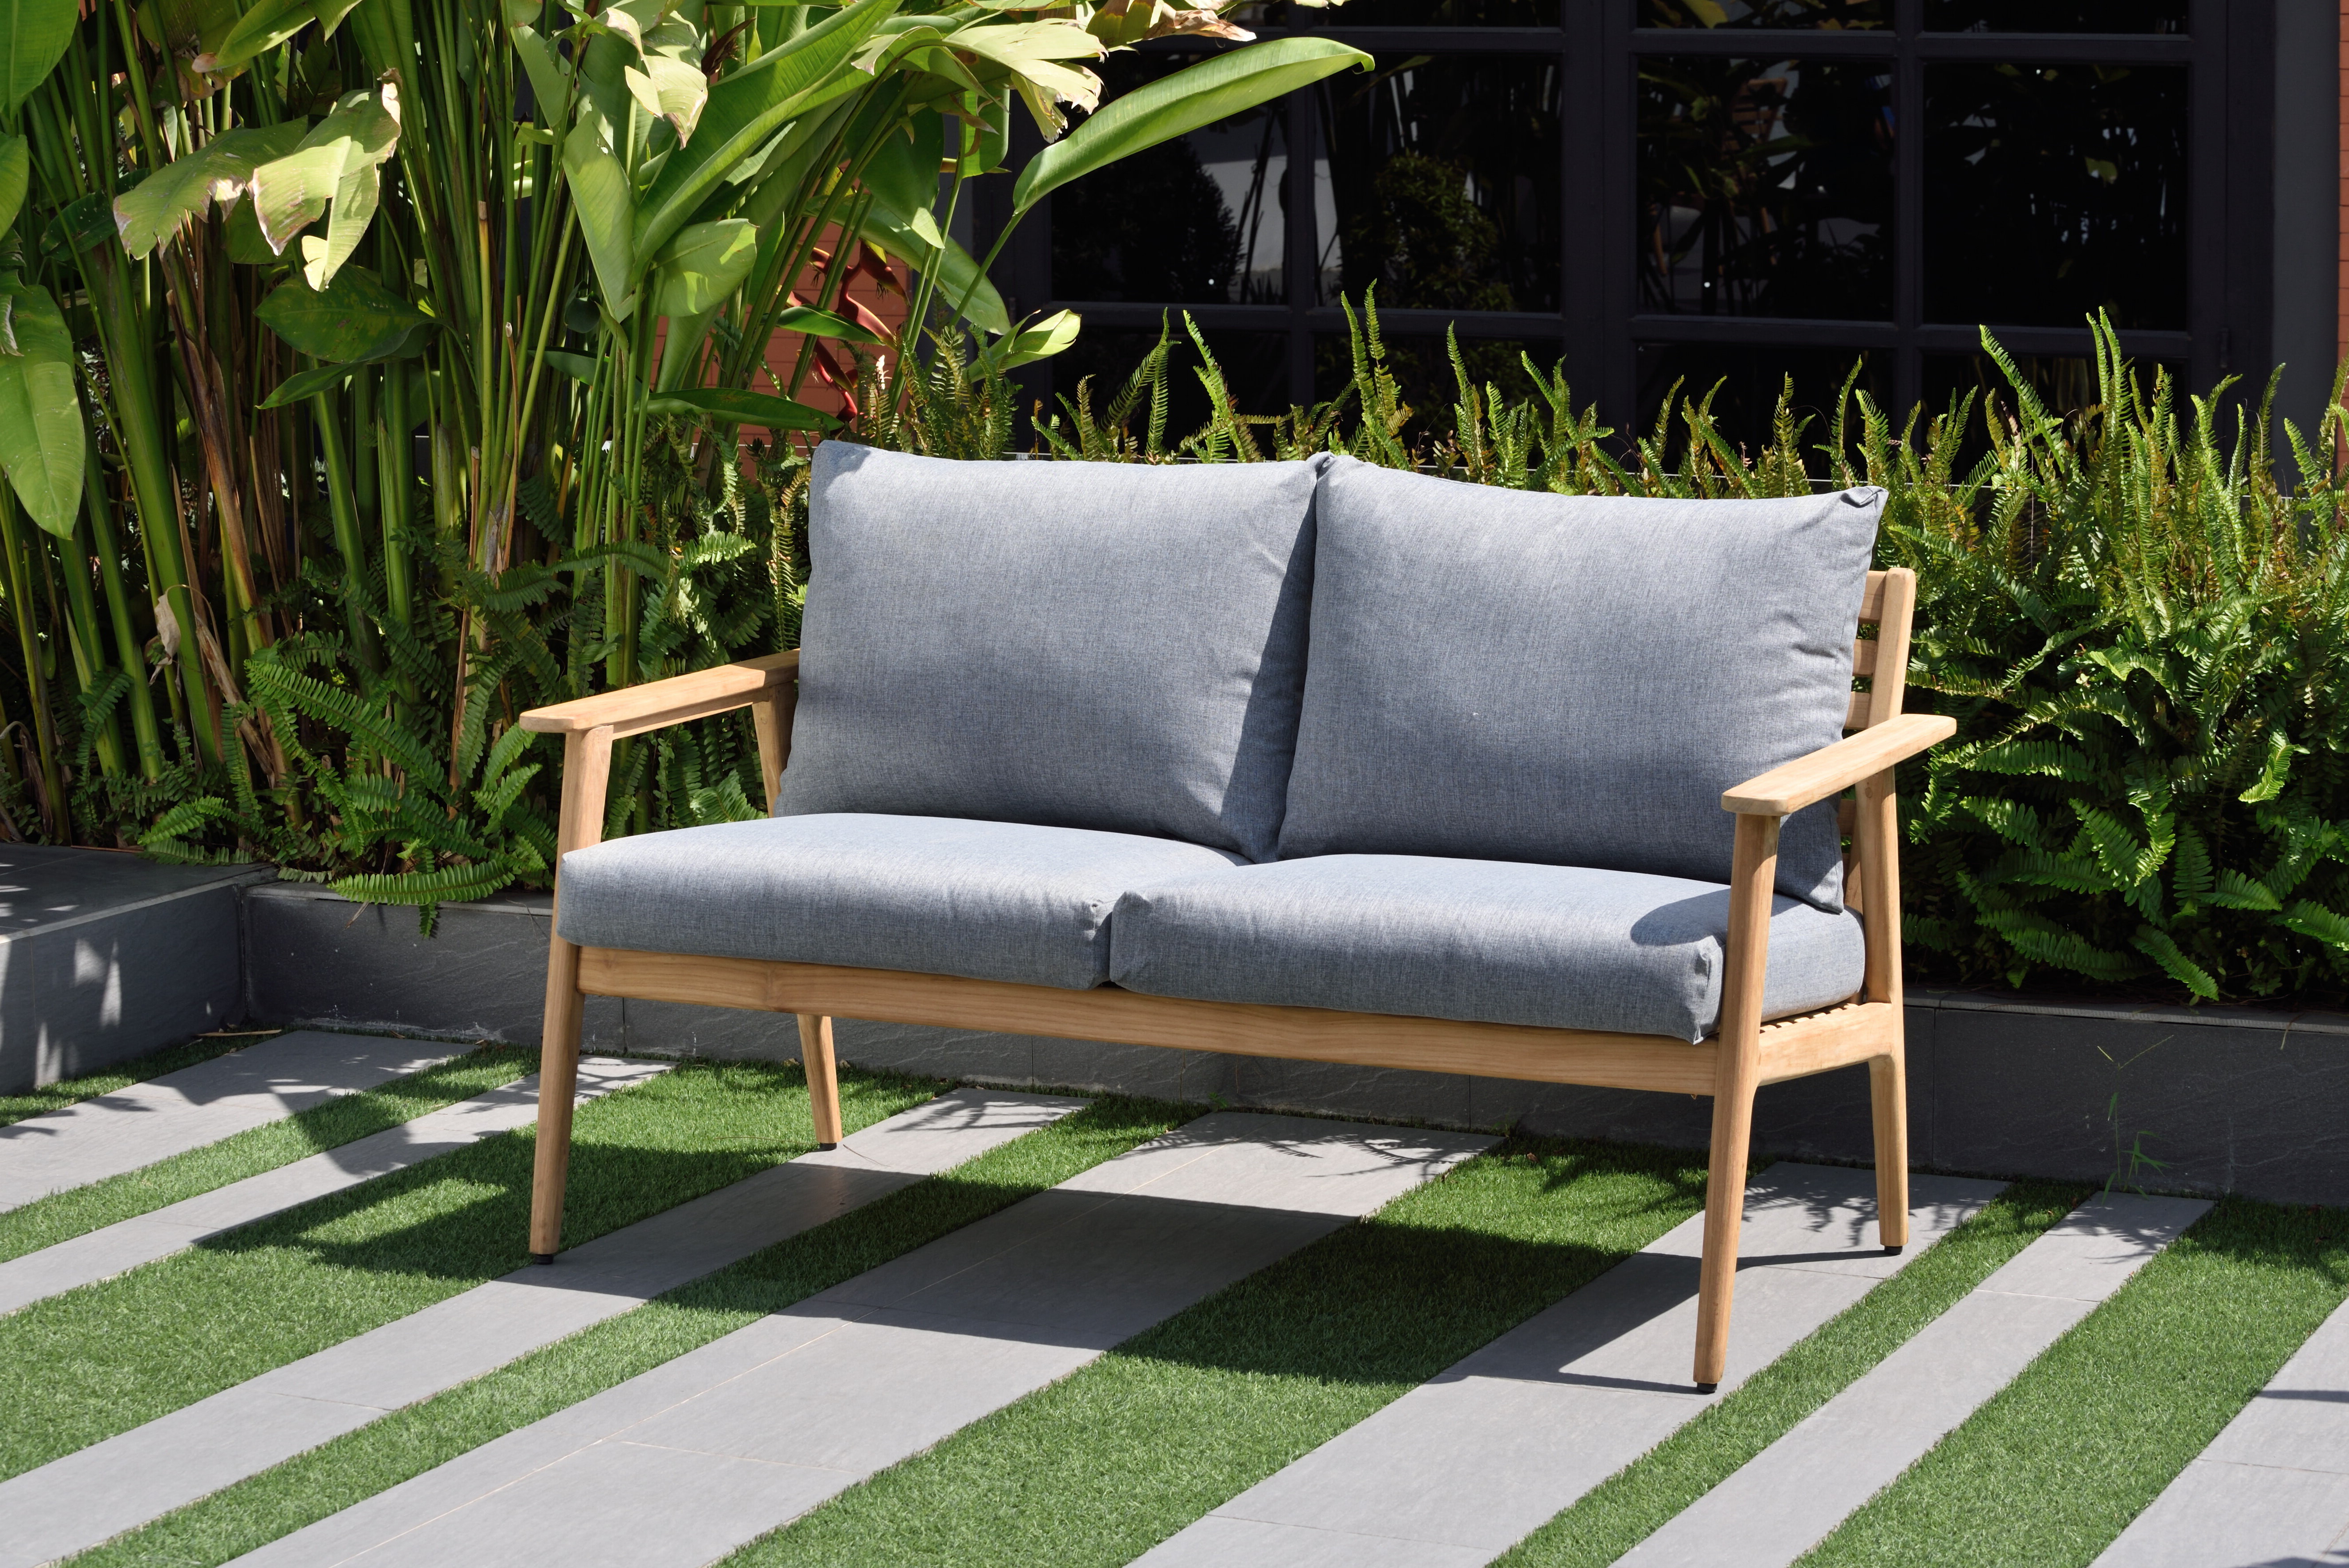 Clary Teak Lounge Patio Daybeds With Cushion With Regard To Widely Used Darrah Deep Seating Teak Patio Sofa With Cushions (View 14 of 20)